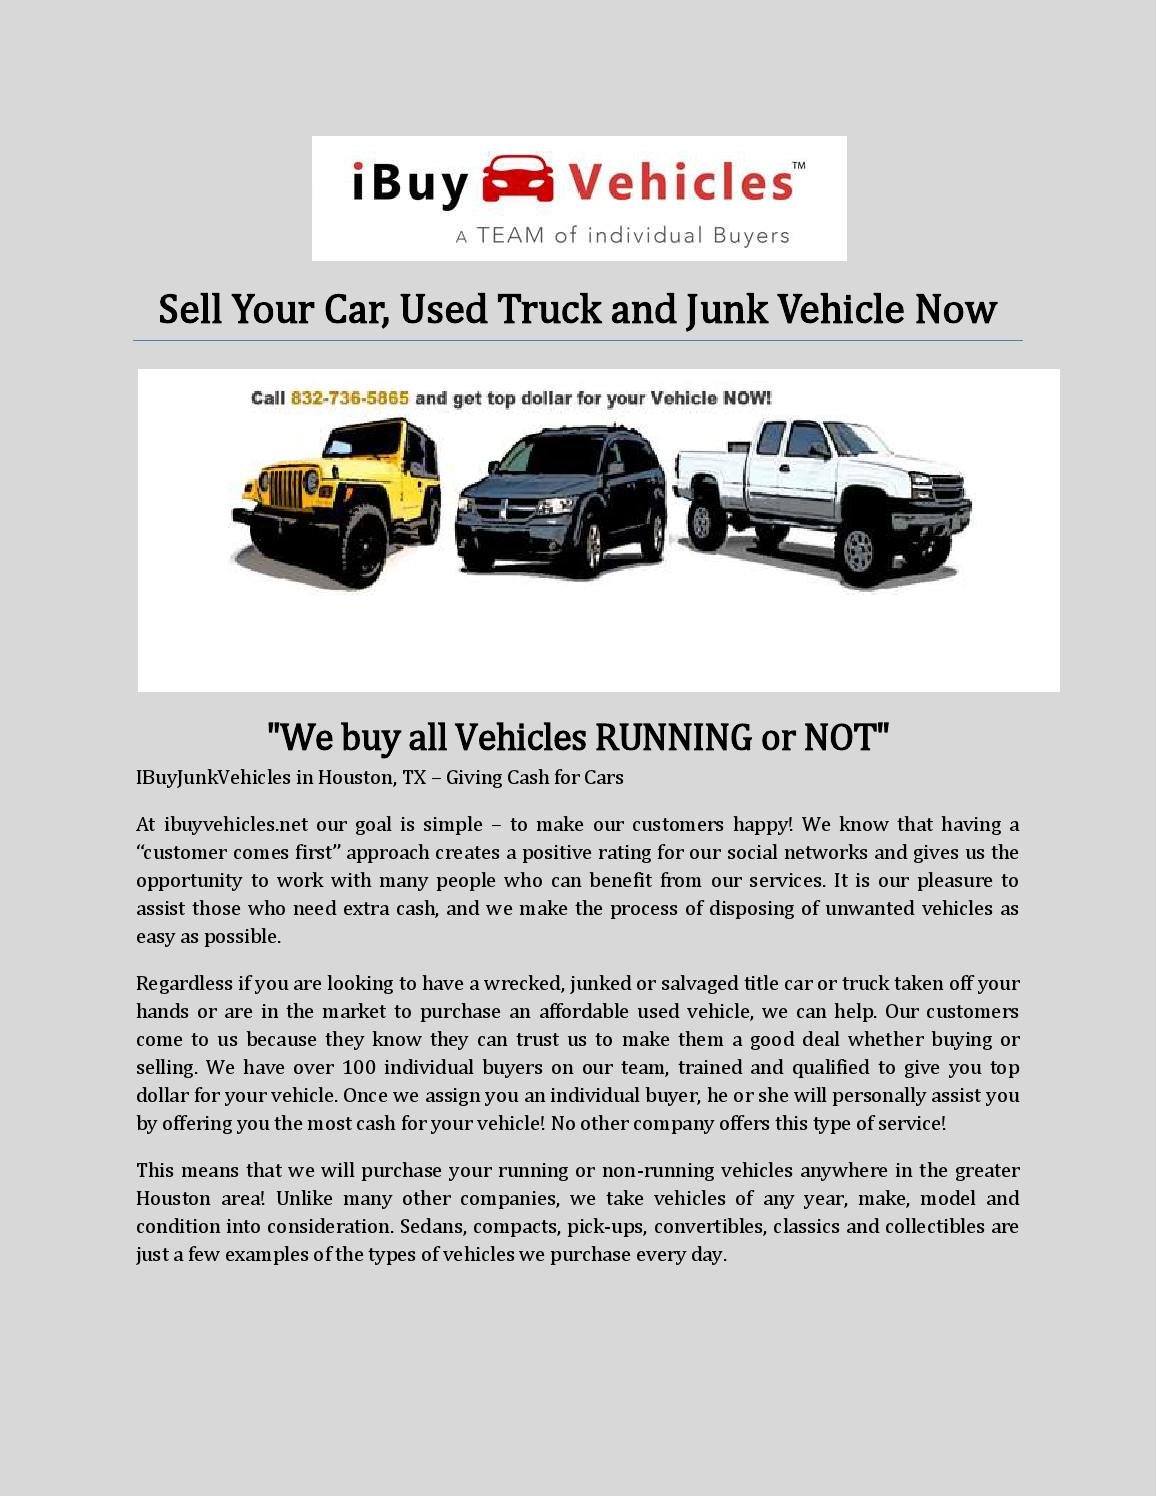 Sell your car, used truck and junk vehicle now by ibuyvehicles - issuu